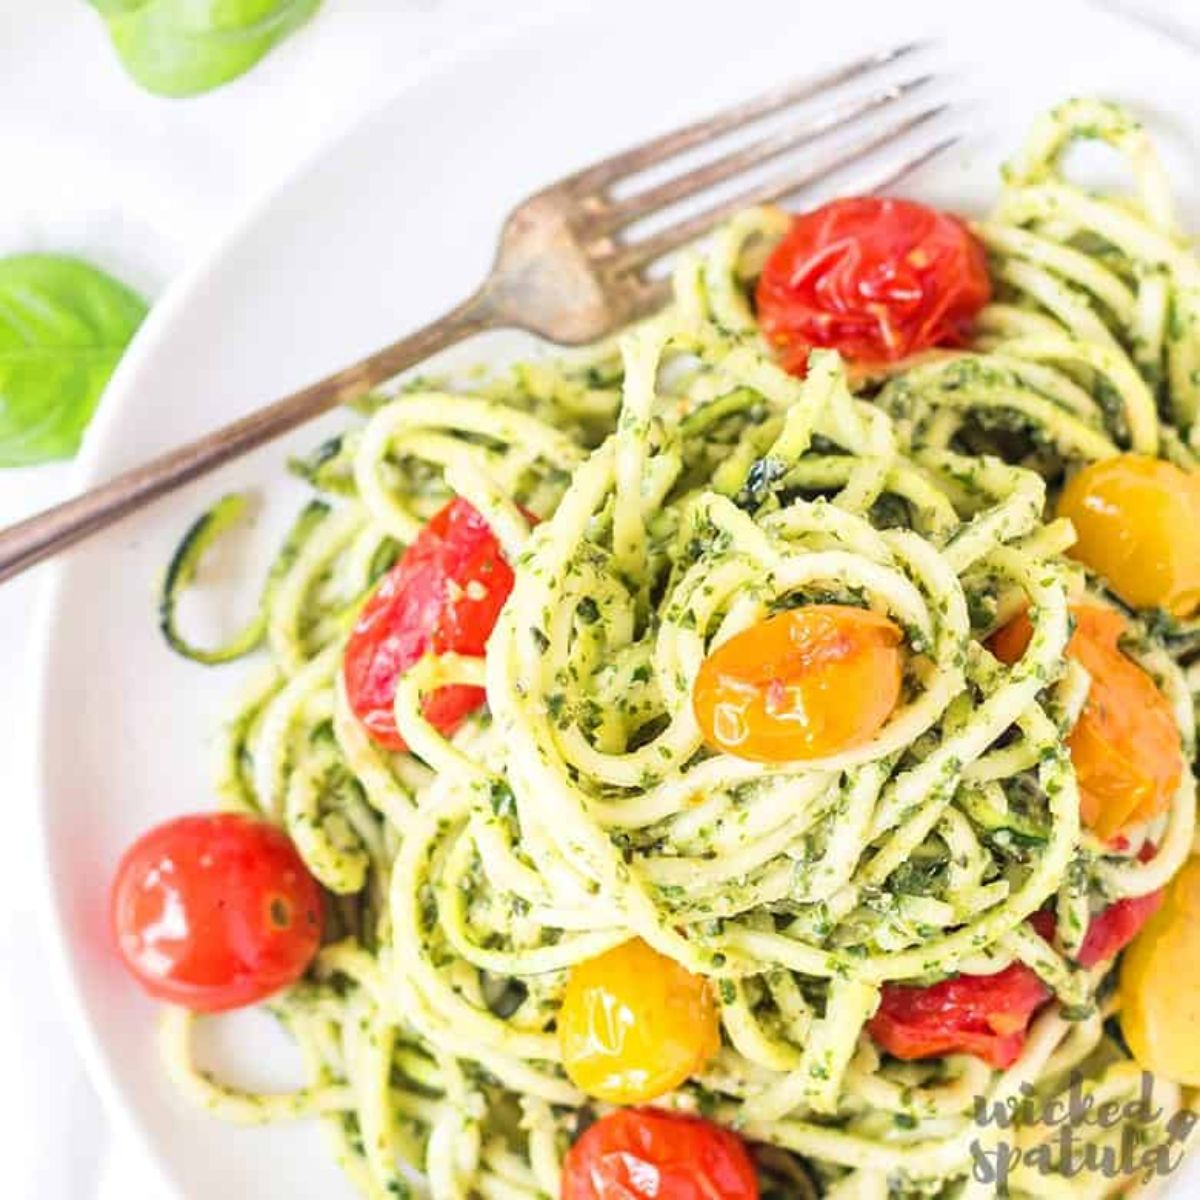 A partial shot of a white bowl filled with spaghetti mixed with pesto sauce and cherry tomatoes. A metal fork is at the top of the bowl